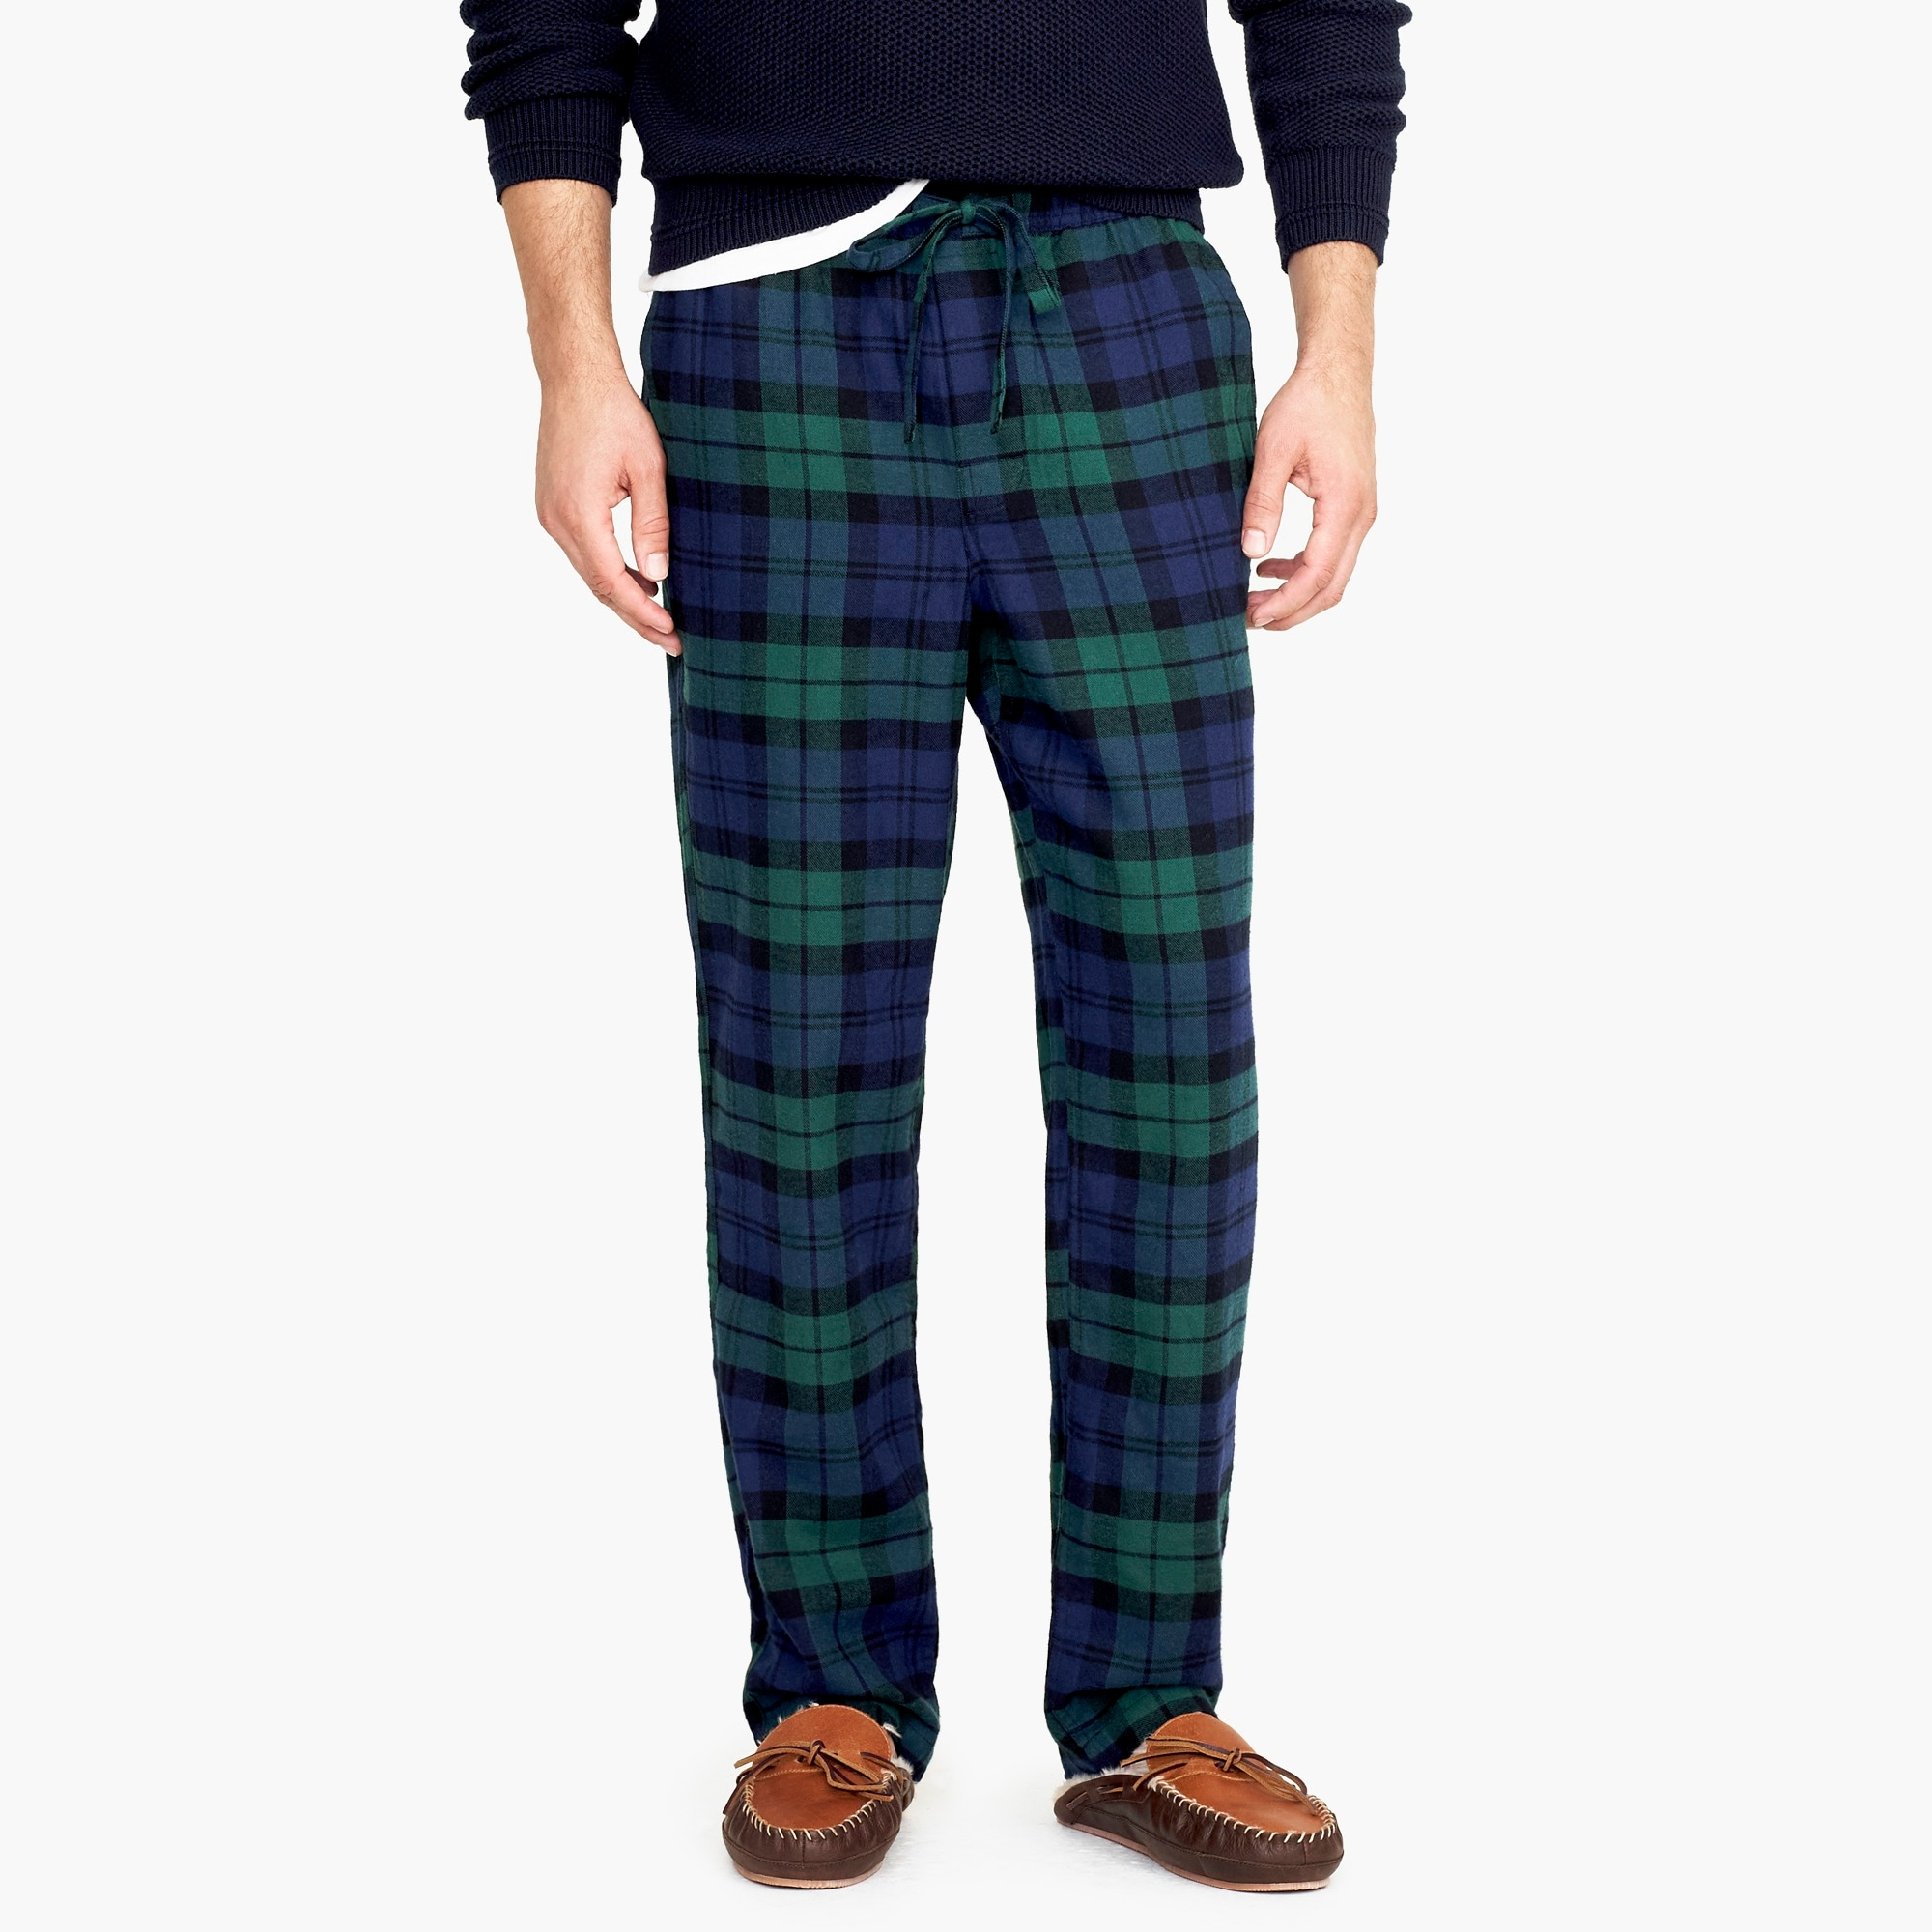 mens Flannel pajama pant in black watch plaid